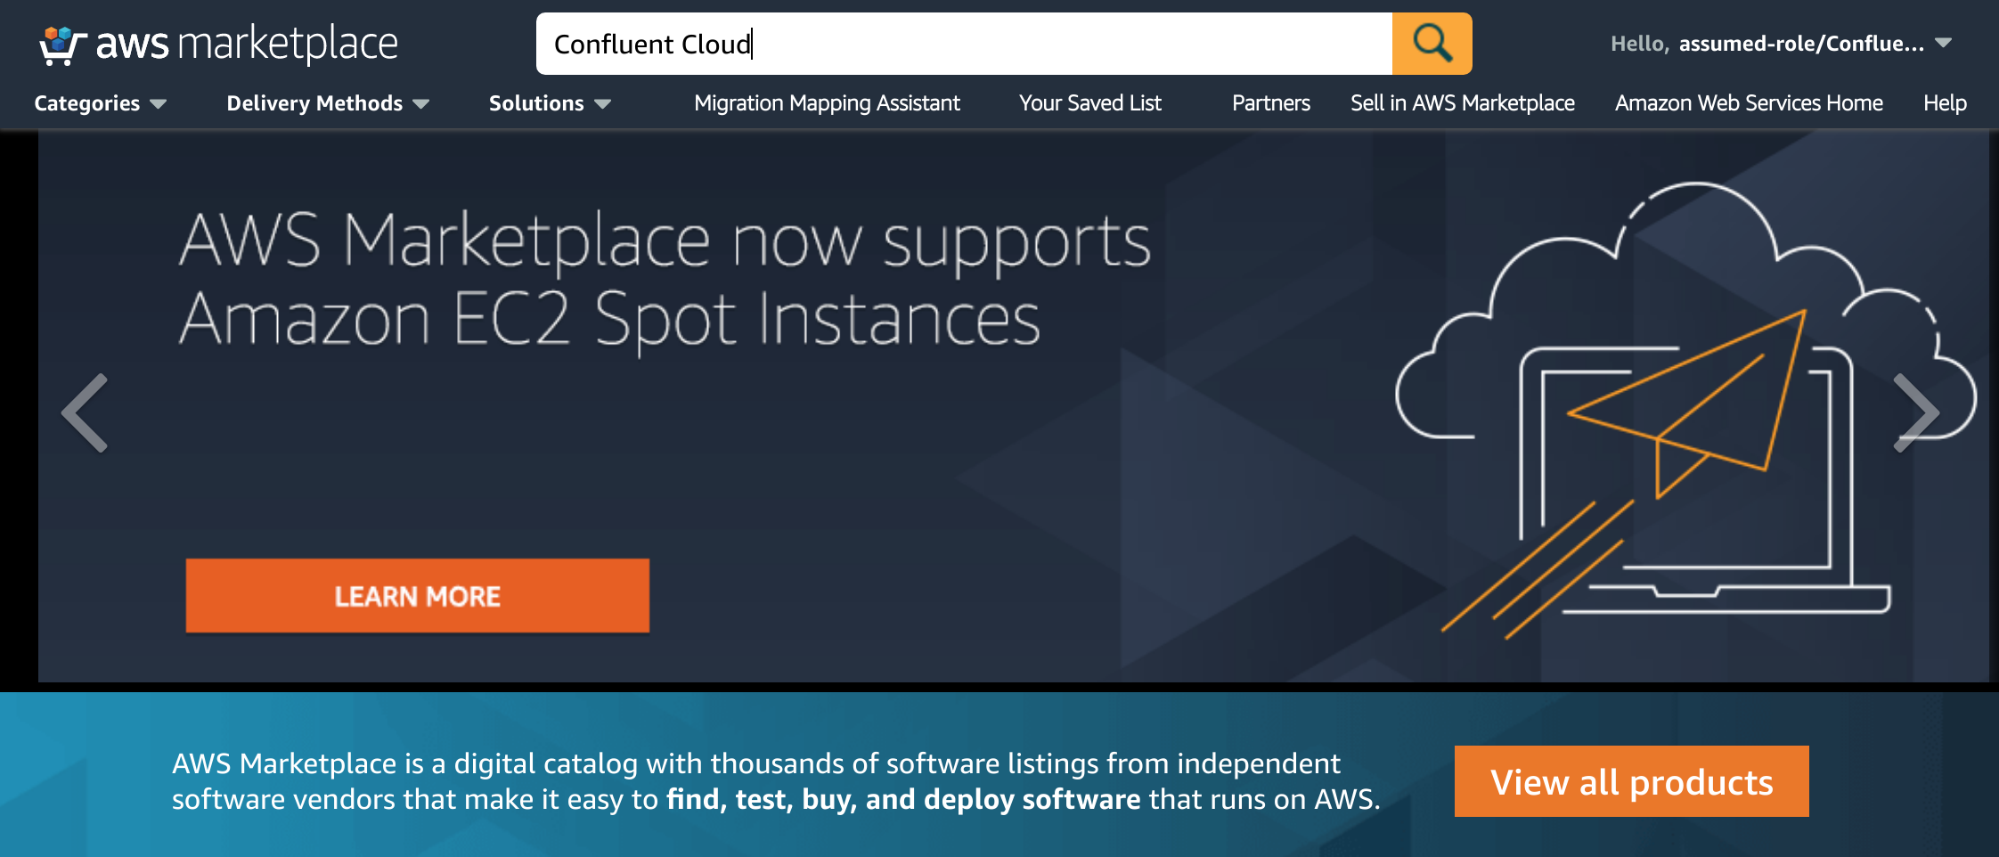 Searching for Confluent Cloud in the AWS Marketplace